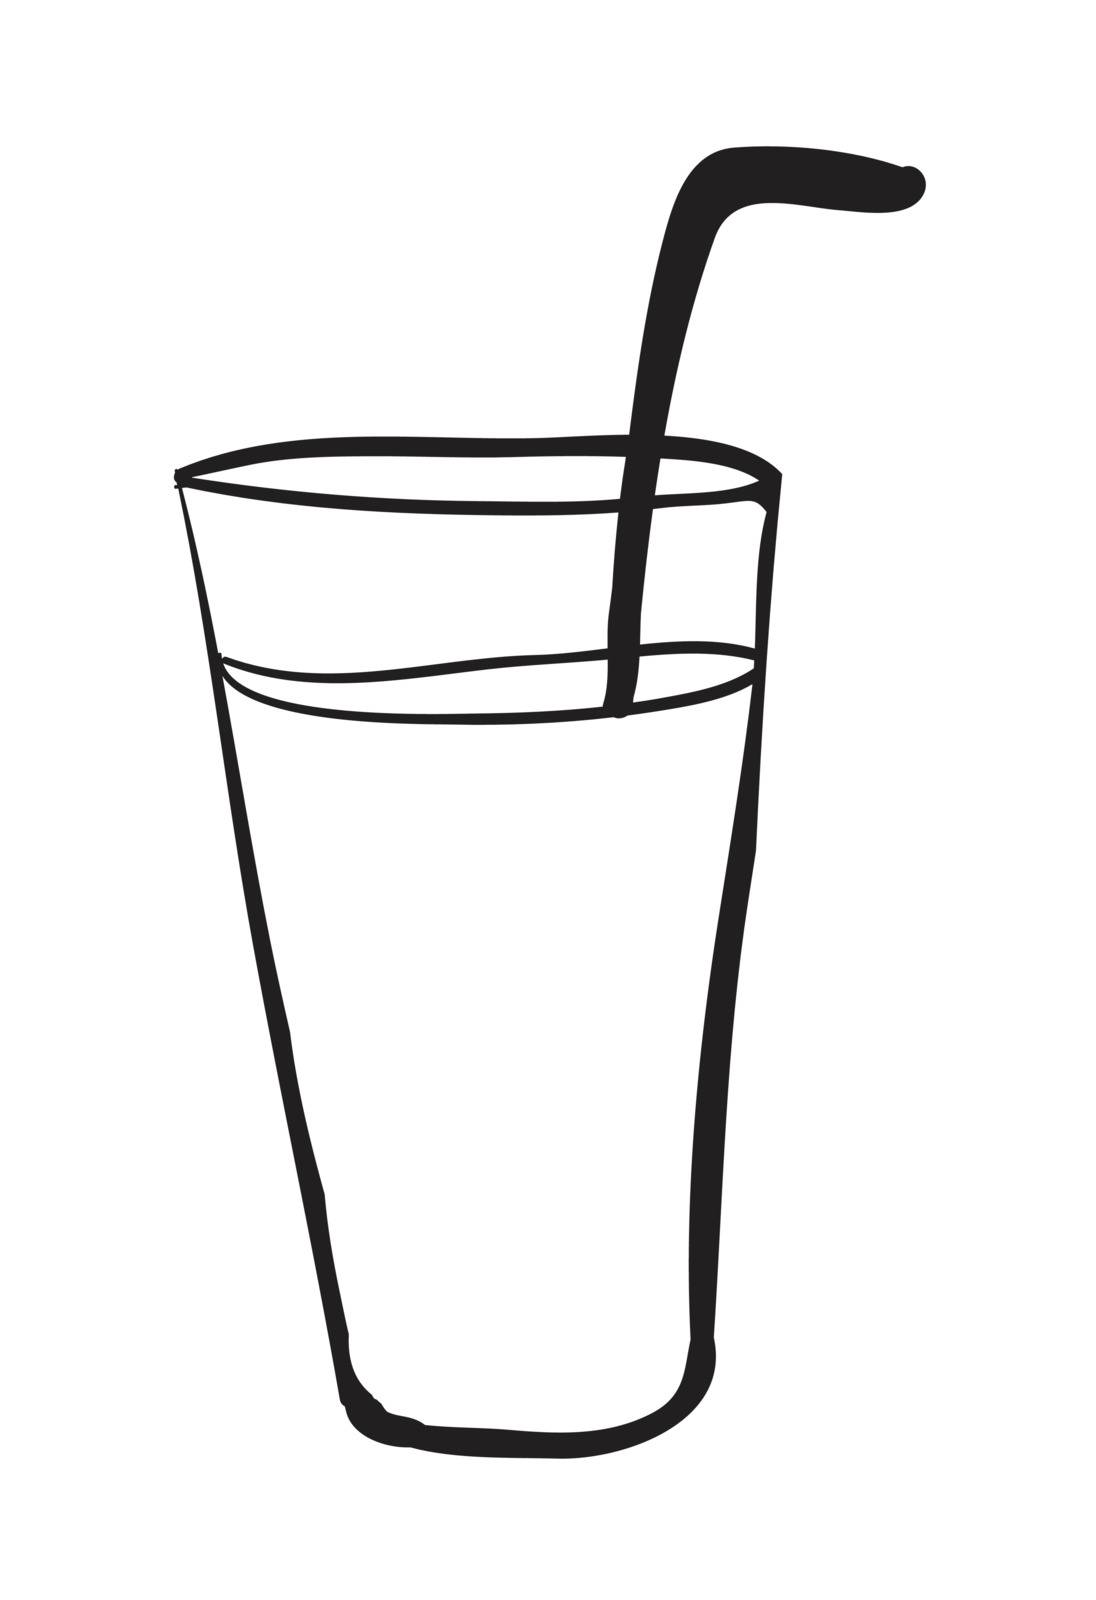 illustration of a glass on a white background